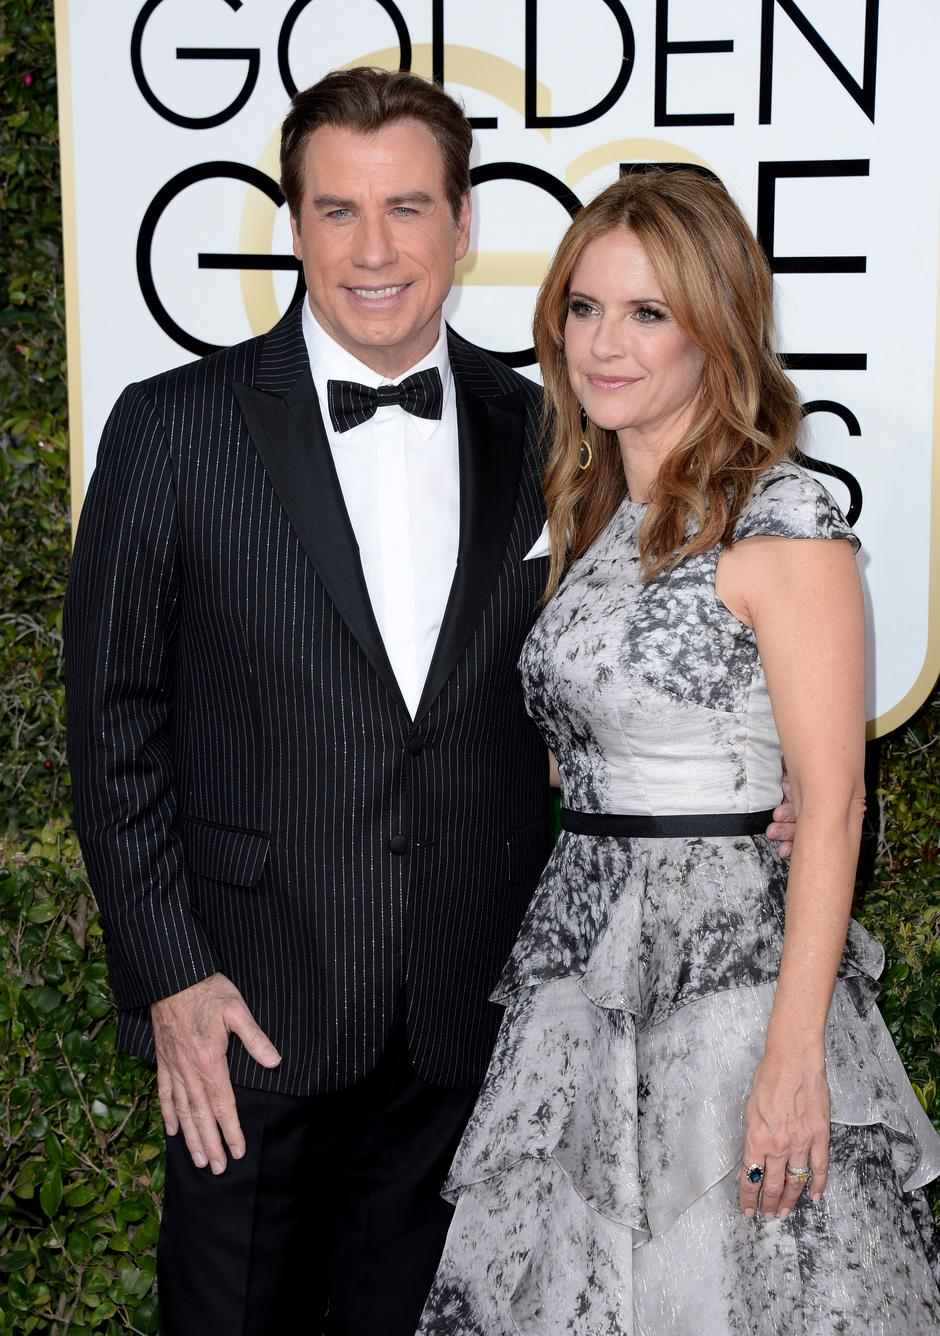 74th Golden Globe Awards Arrivals - LA | Autor: Hahn Lionel/Press Association/PIXSELL